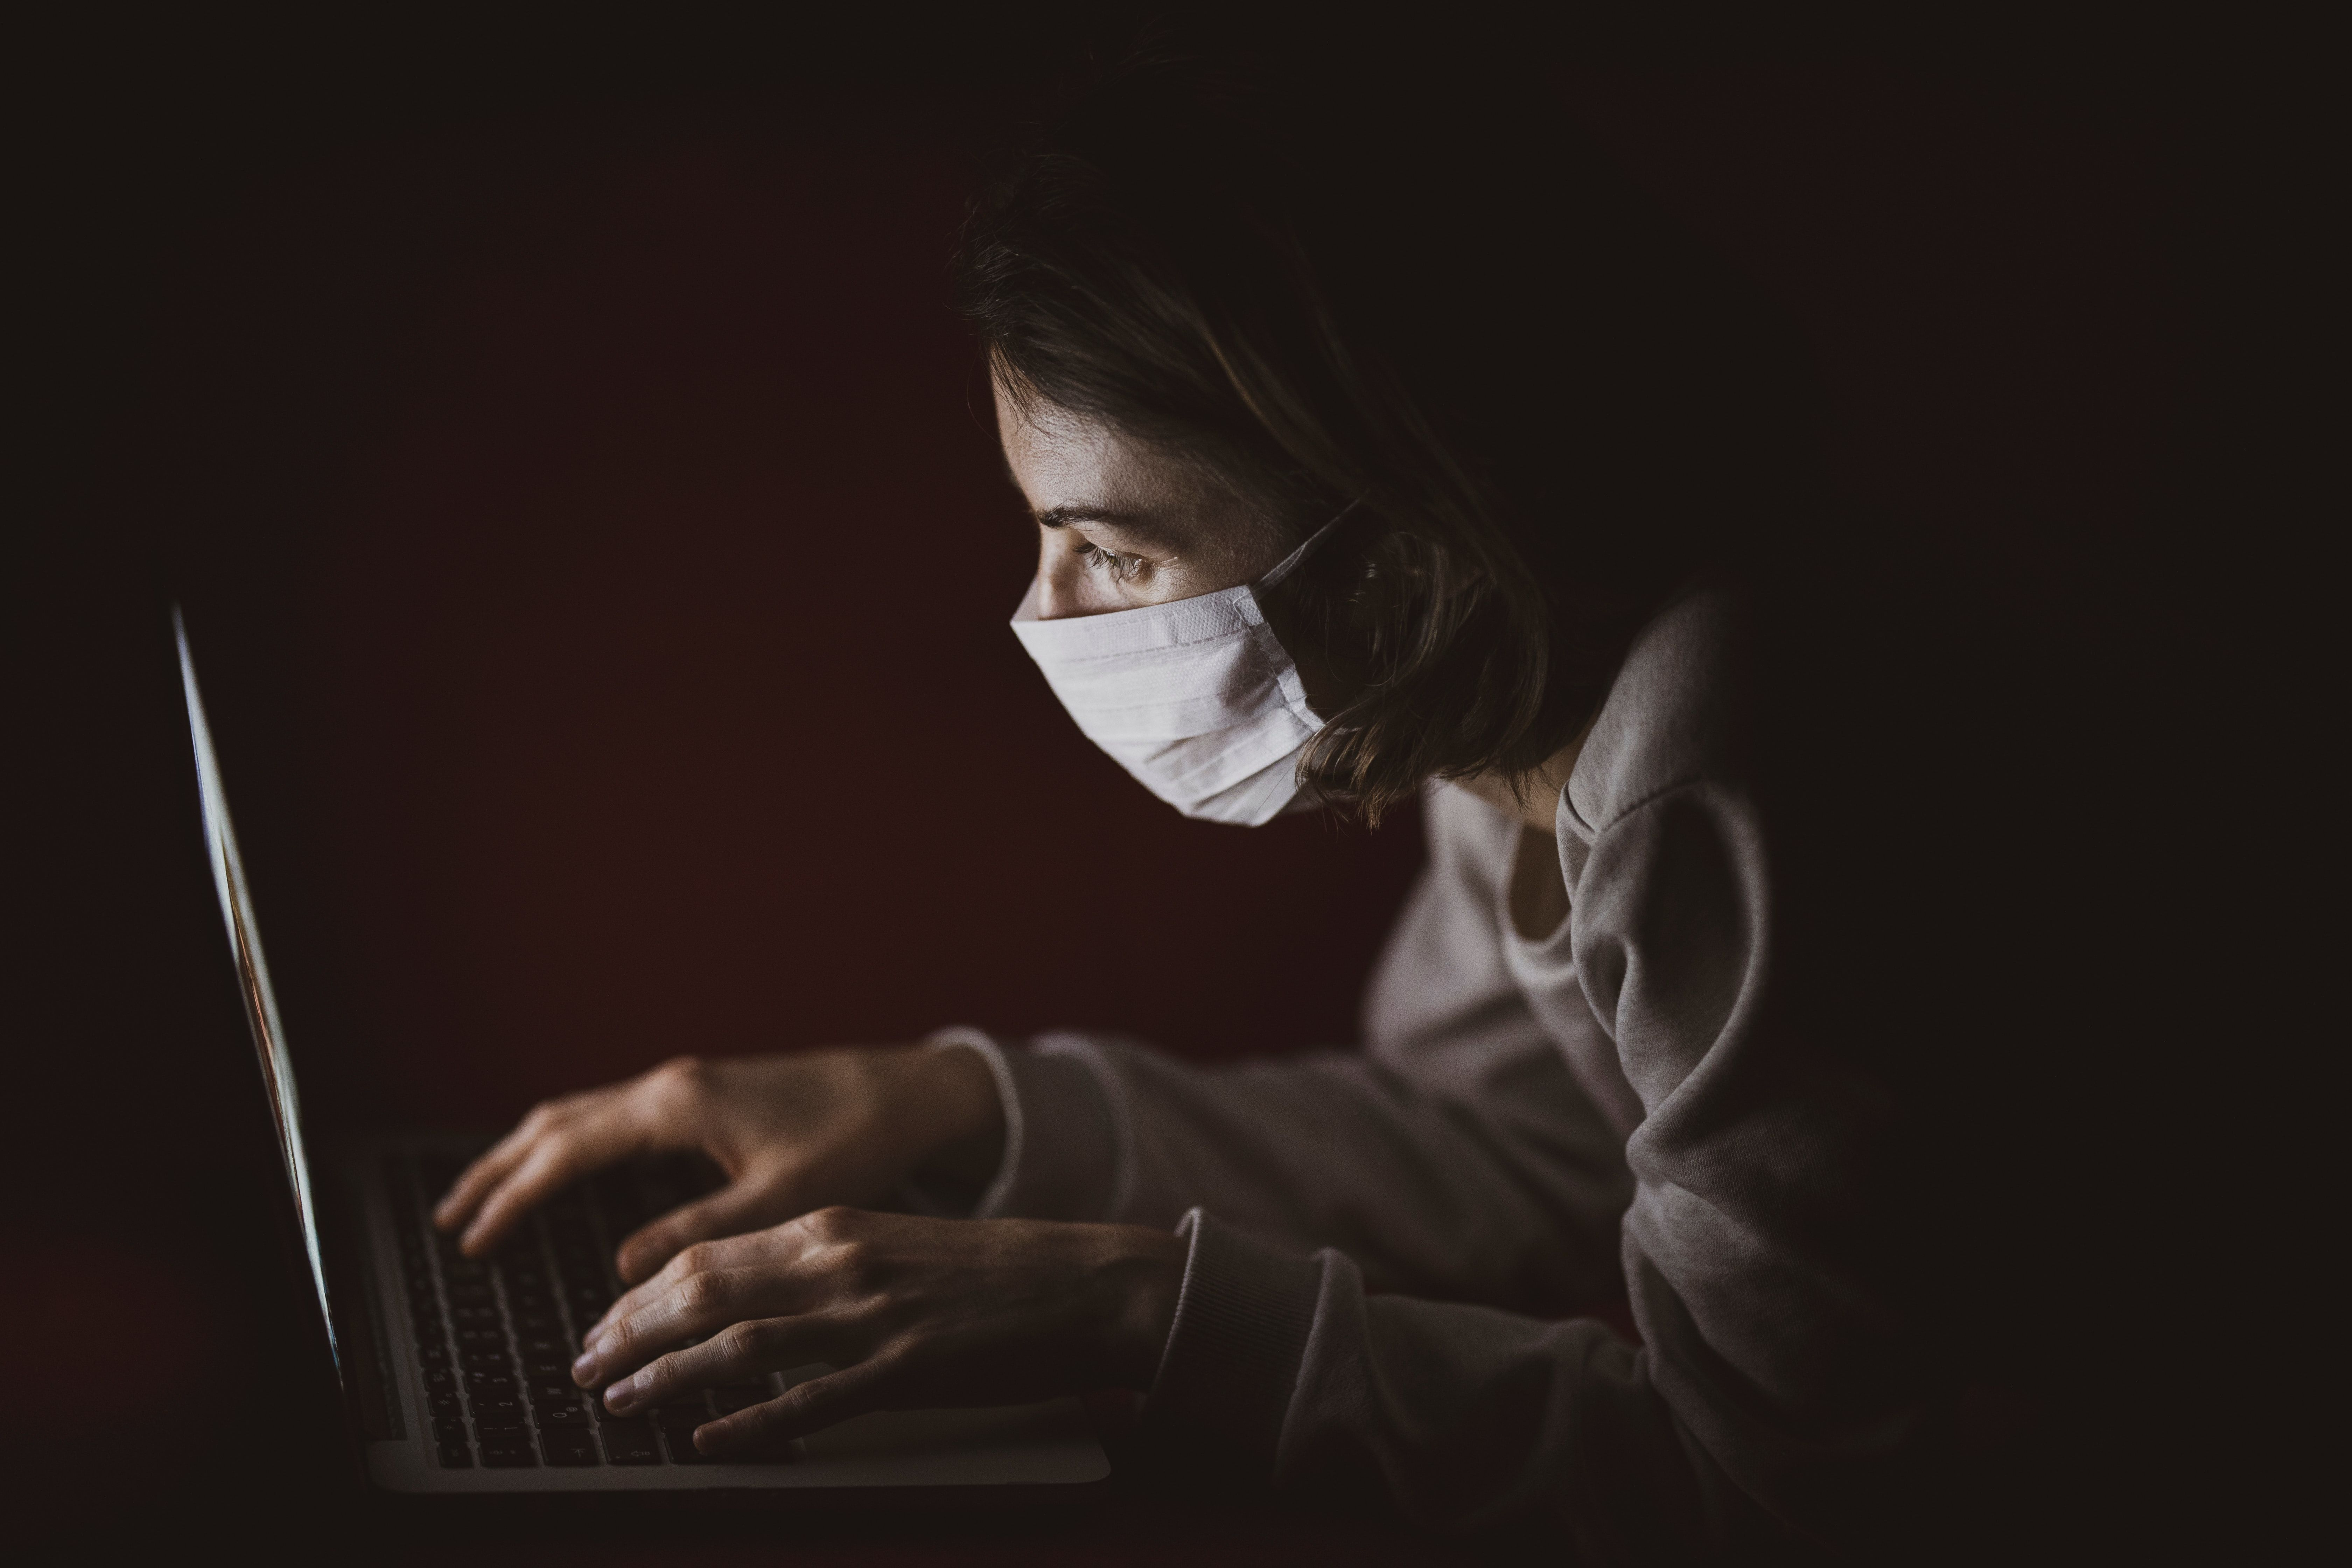 /humanitarian-engineering-the-open-source-pandemic-response-r93g3349 feature image